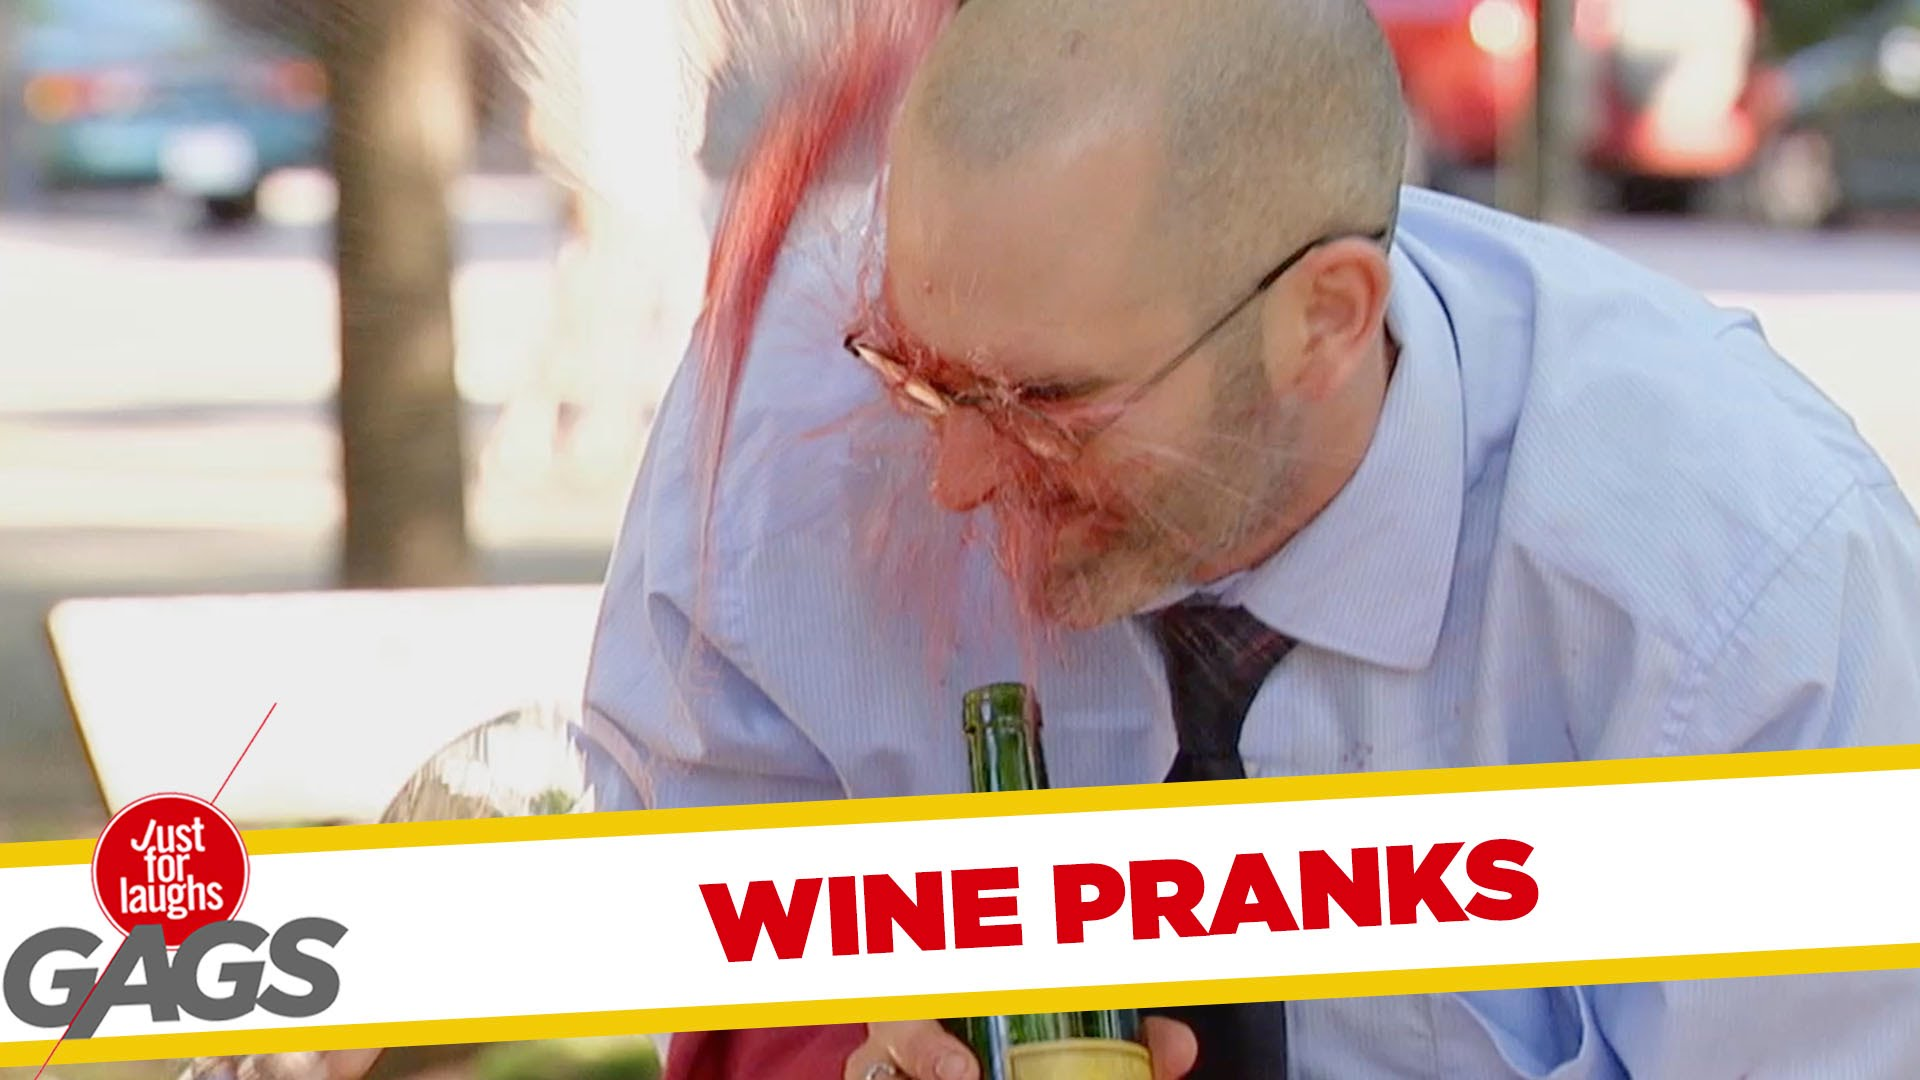 VIDEO: Best Just For Laughs Gags Wine Pranks |